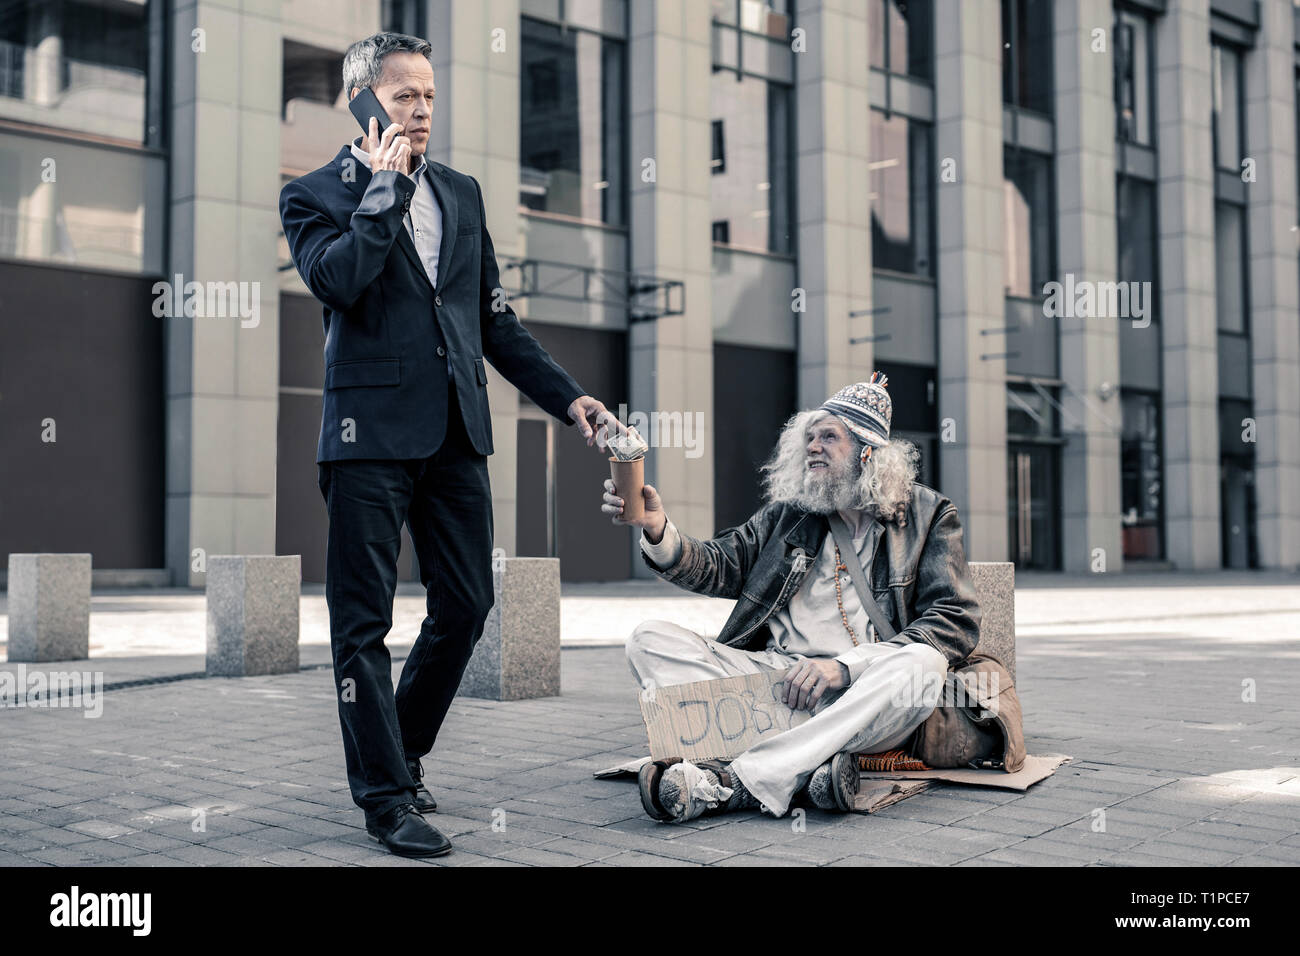 Thankful grey-haired senior homeless looking on business man - Stock Image